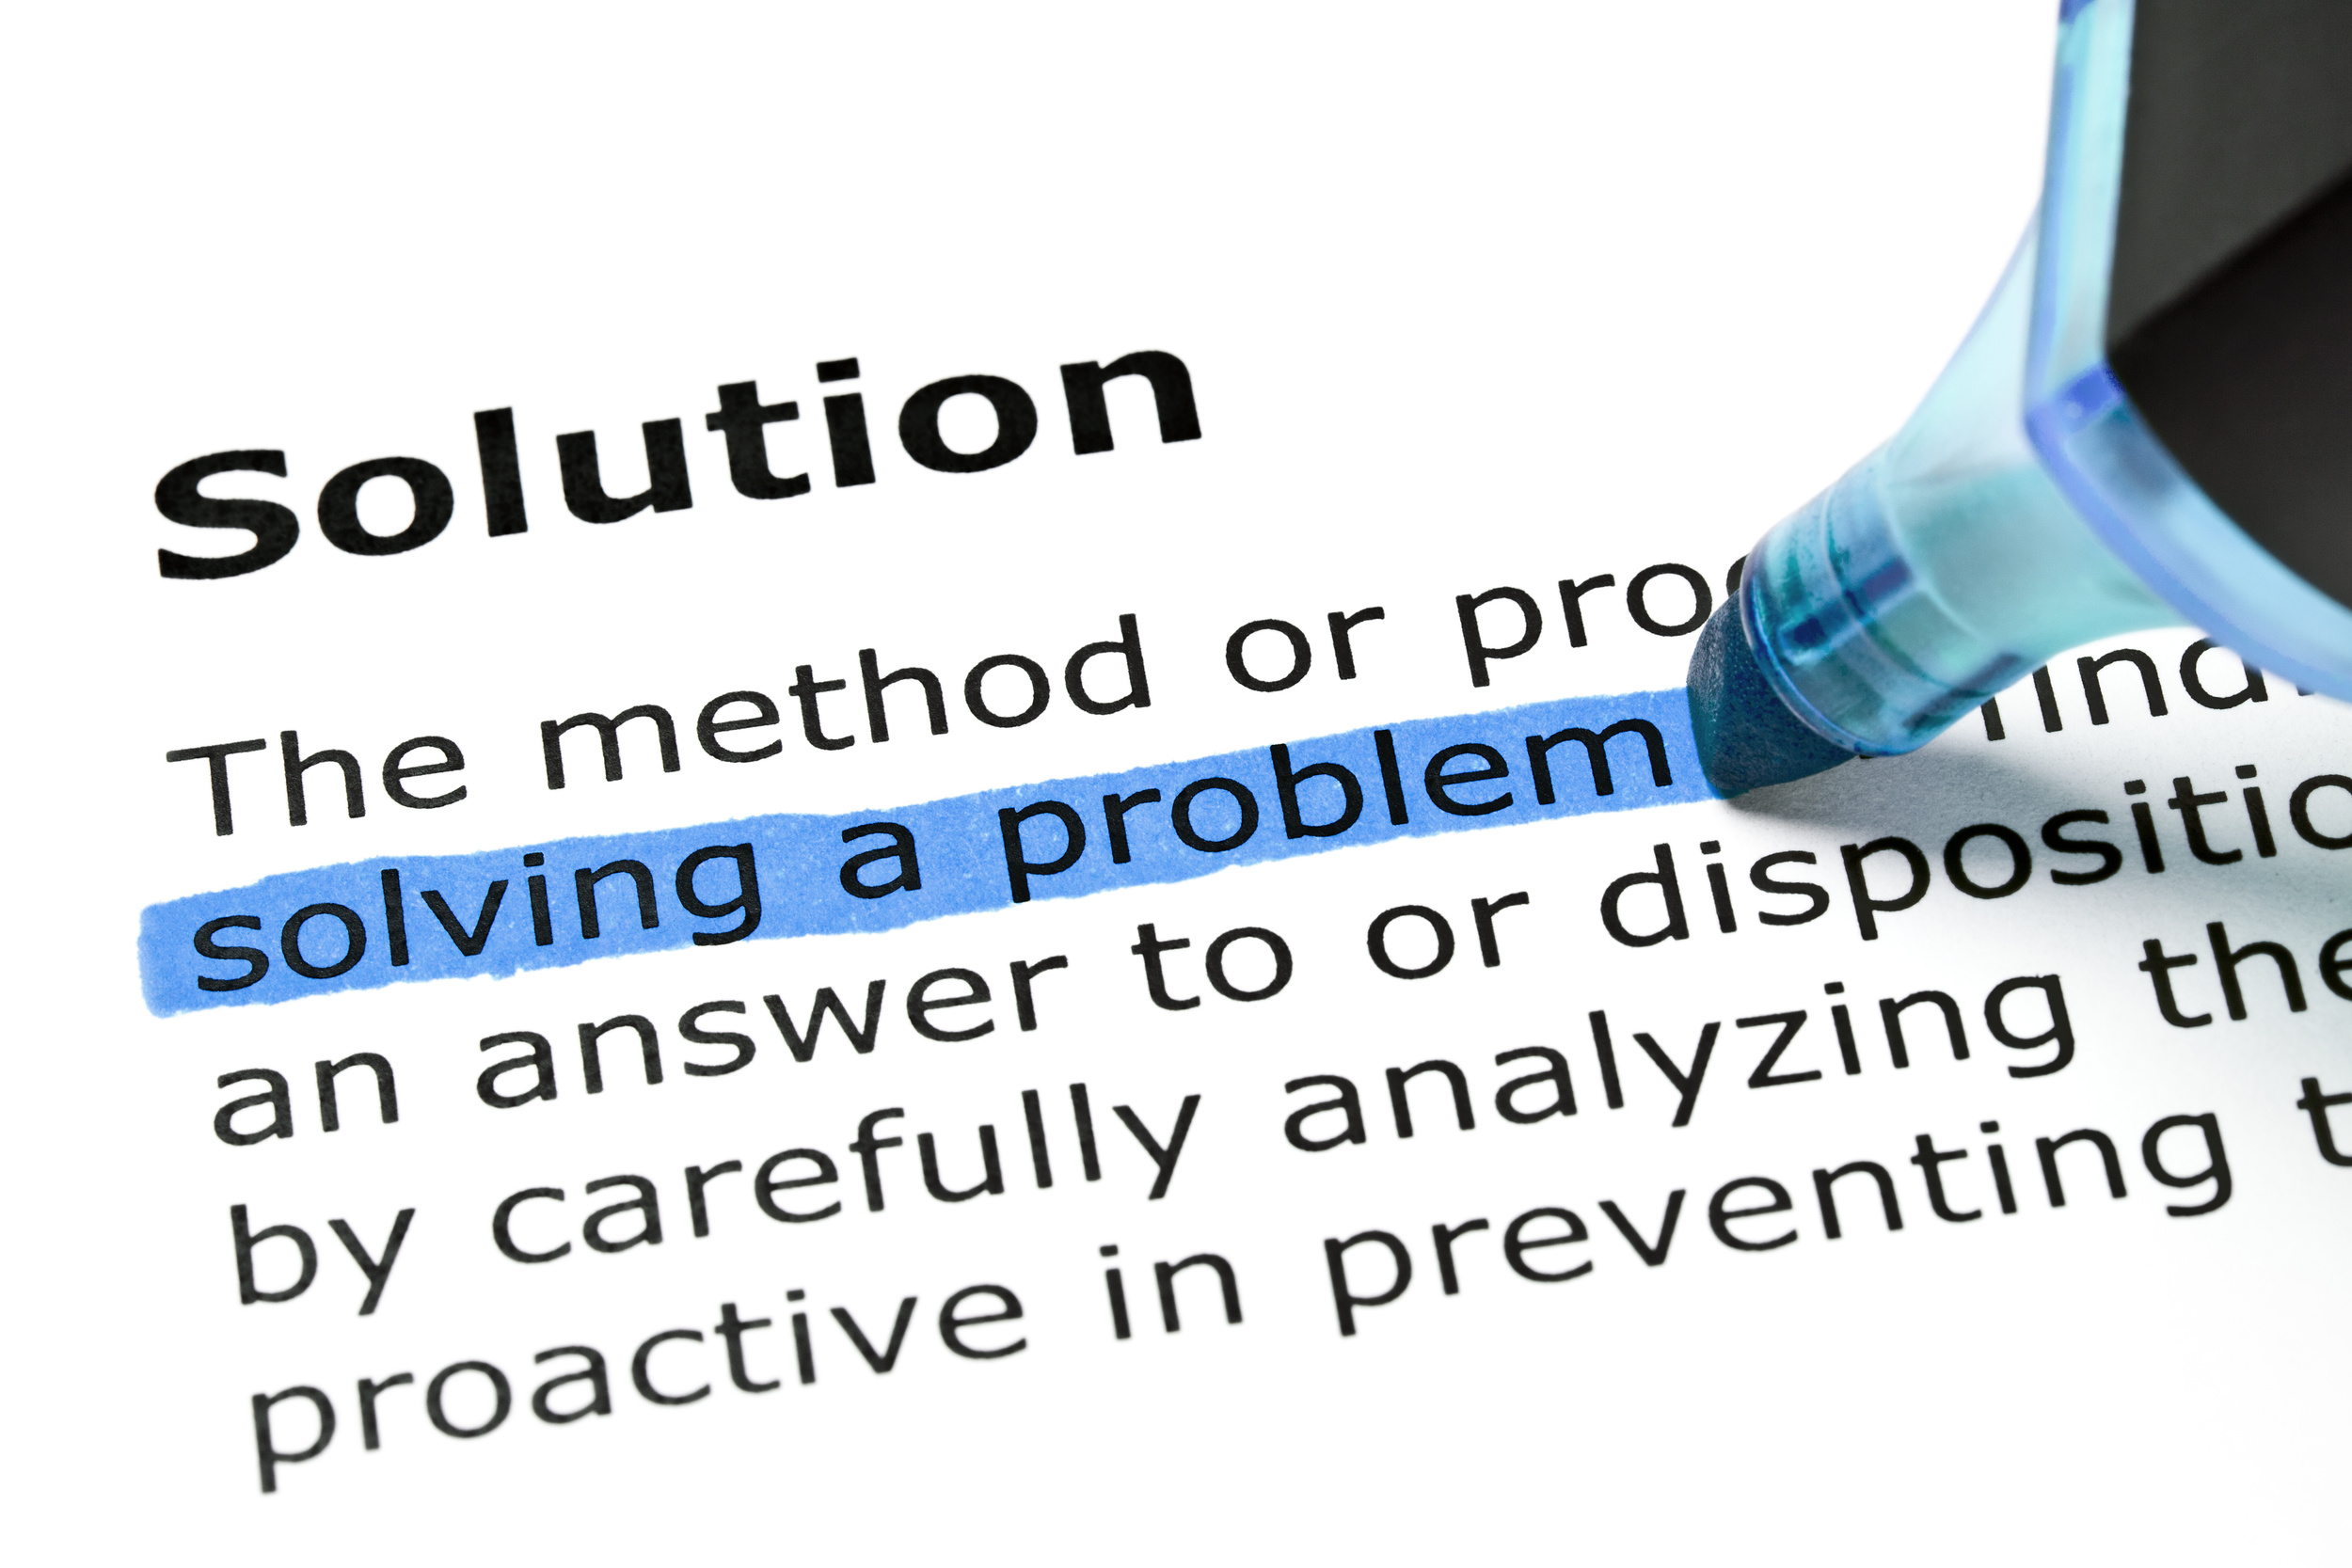 jed02 answers and solutions to problem Every java solution depends on these shared classes: eulersolutionjava,  libraryjava many python solutions depend on my.